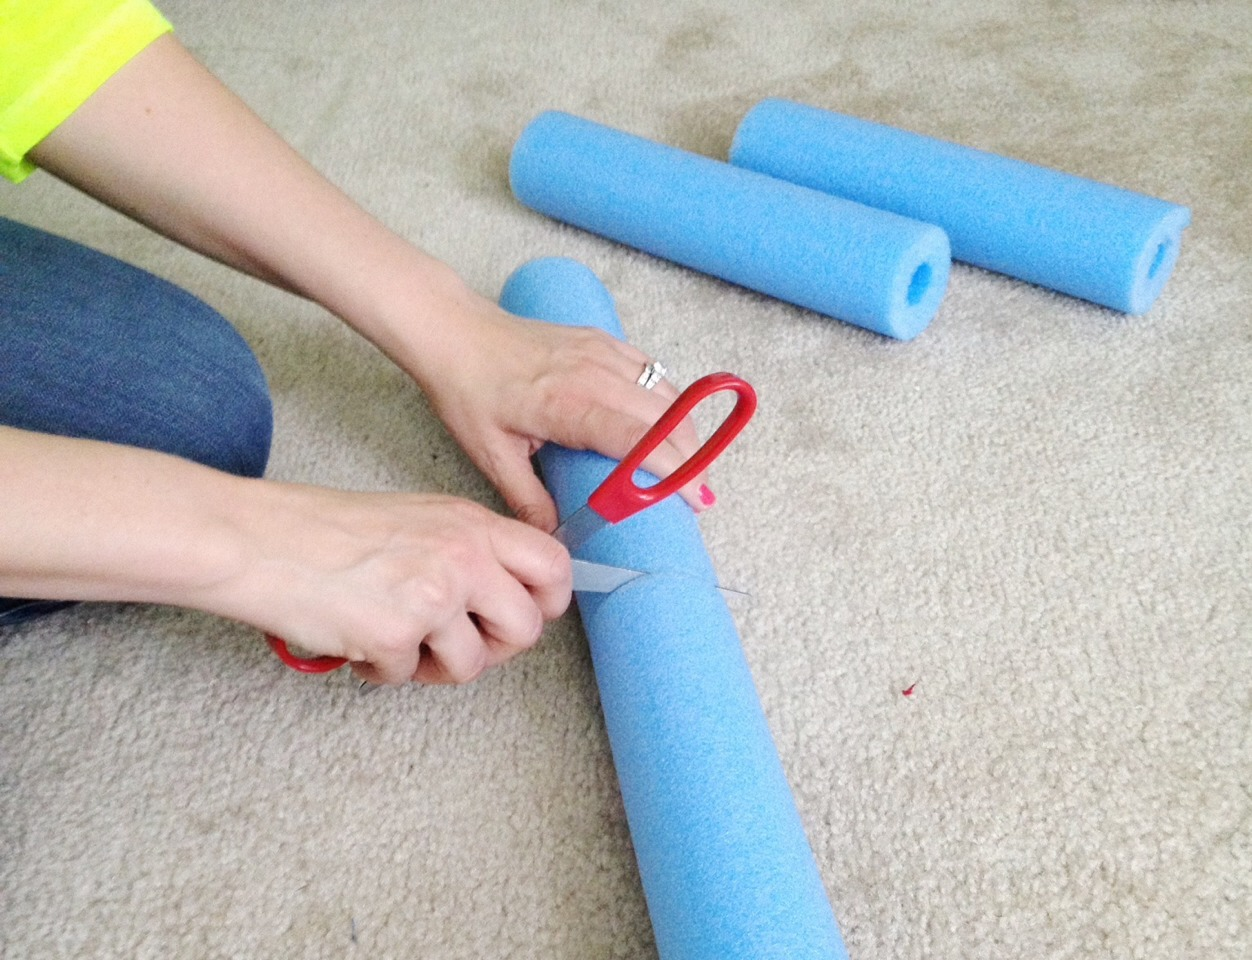 Step two: Cut the pool noodles in half.